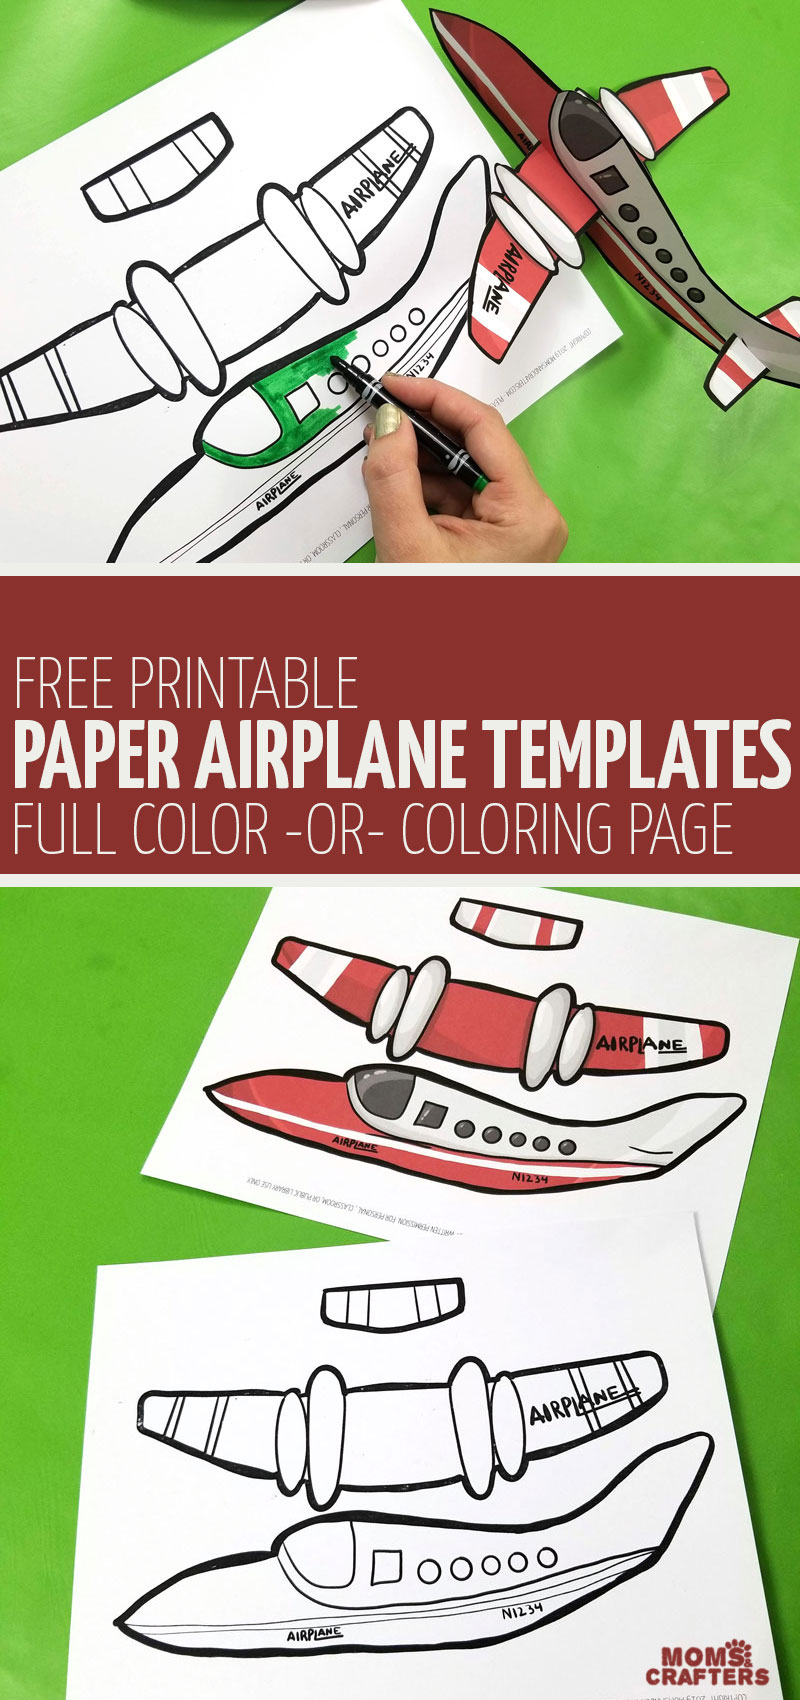 CLick for this free printable easy paper airplane templates in the full color and coloring page version! This fun kids craft and paper toy is a super fun paper craft to make for travel.